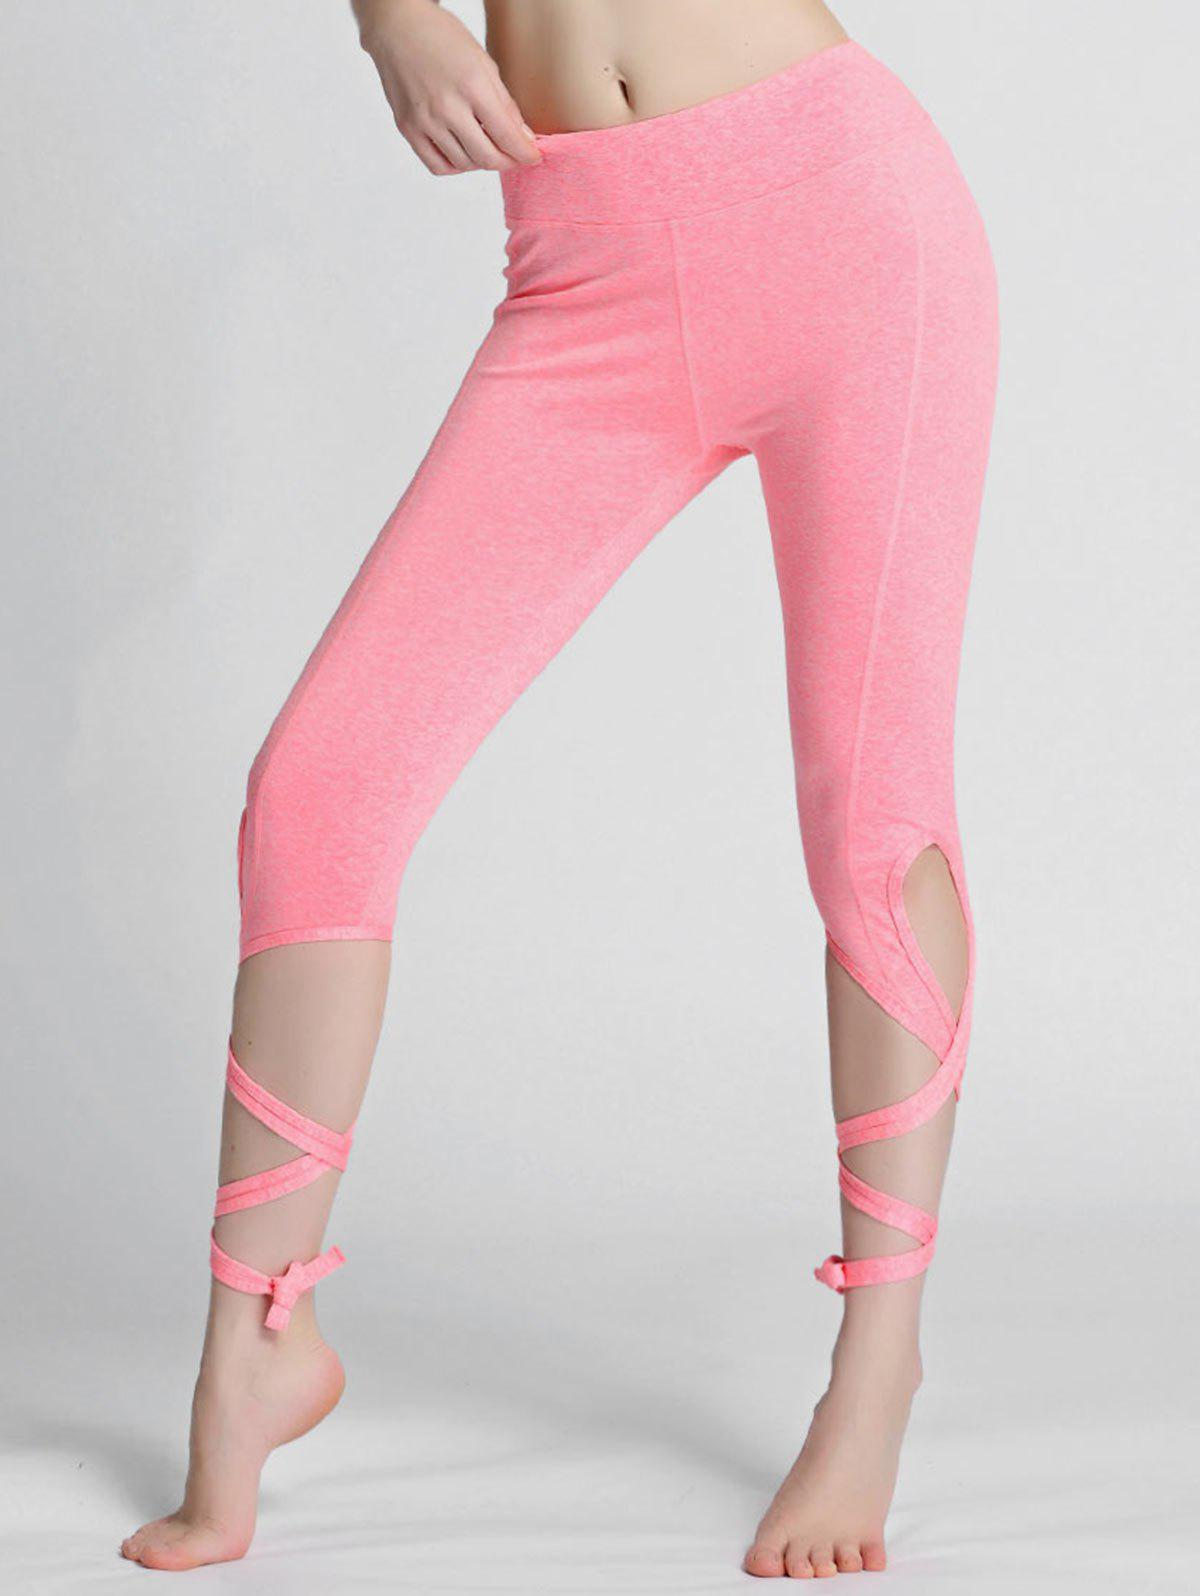 13862e23566e1 49% OFF] High Waisted Lace Up Gym Leggings | Rosegal